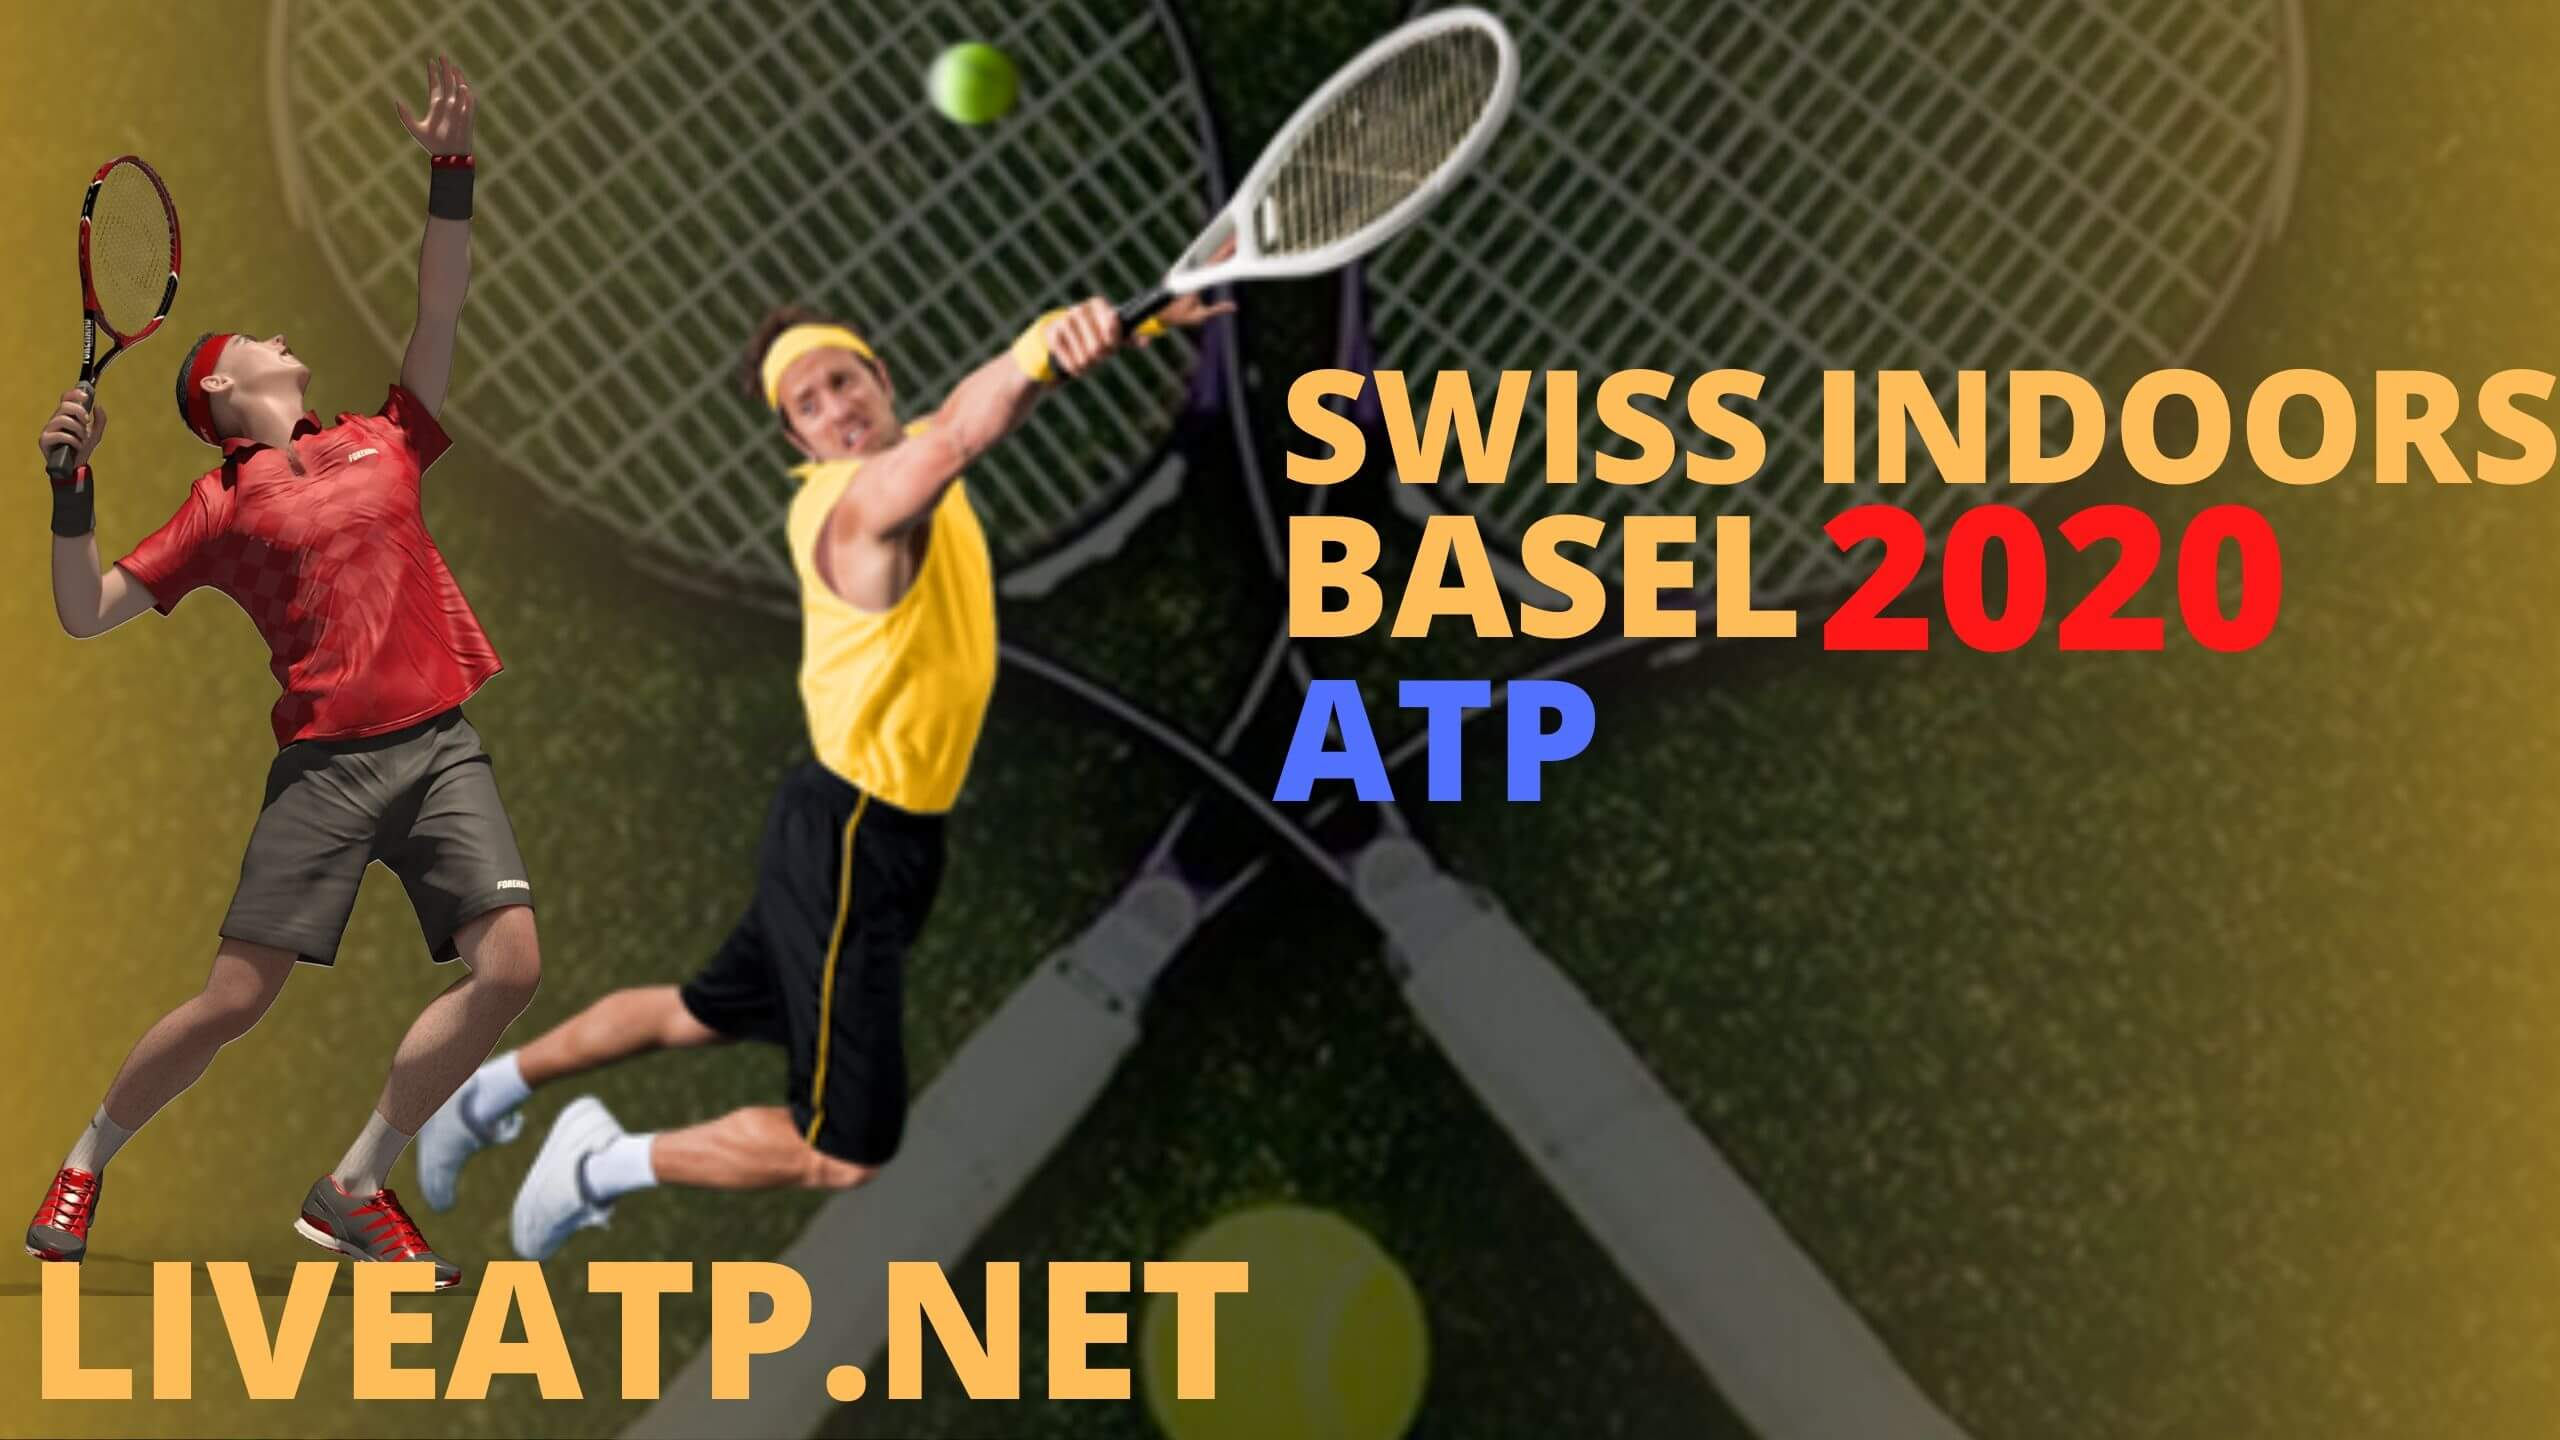 Swiss Indoors Basel Live Stream 2020 | Final